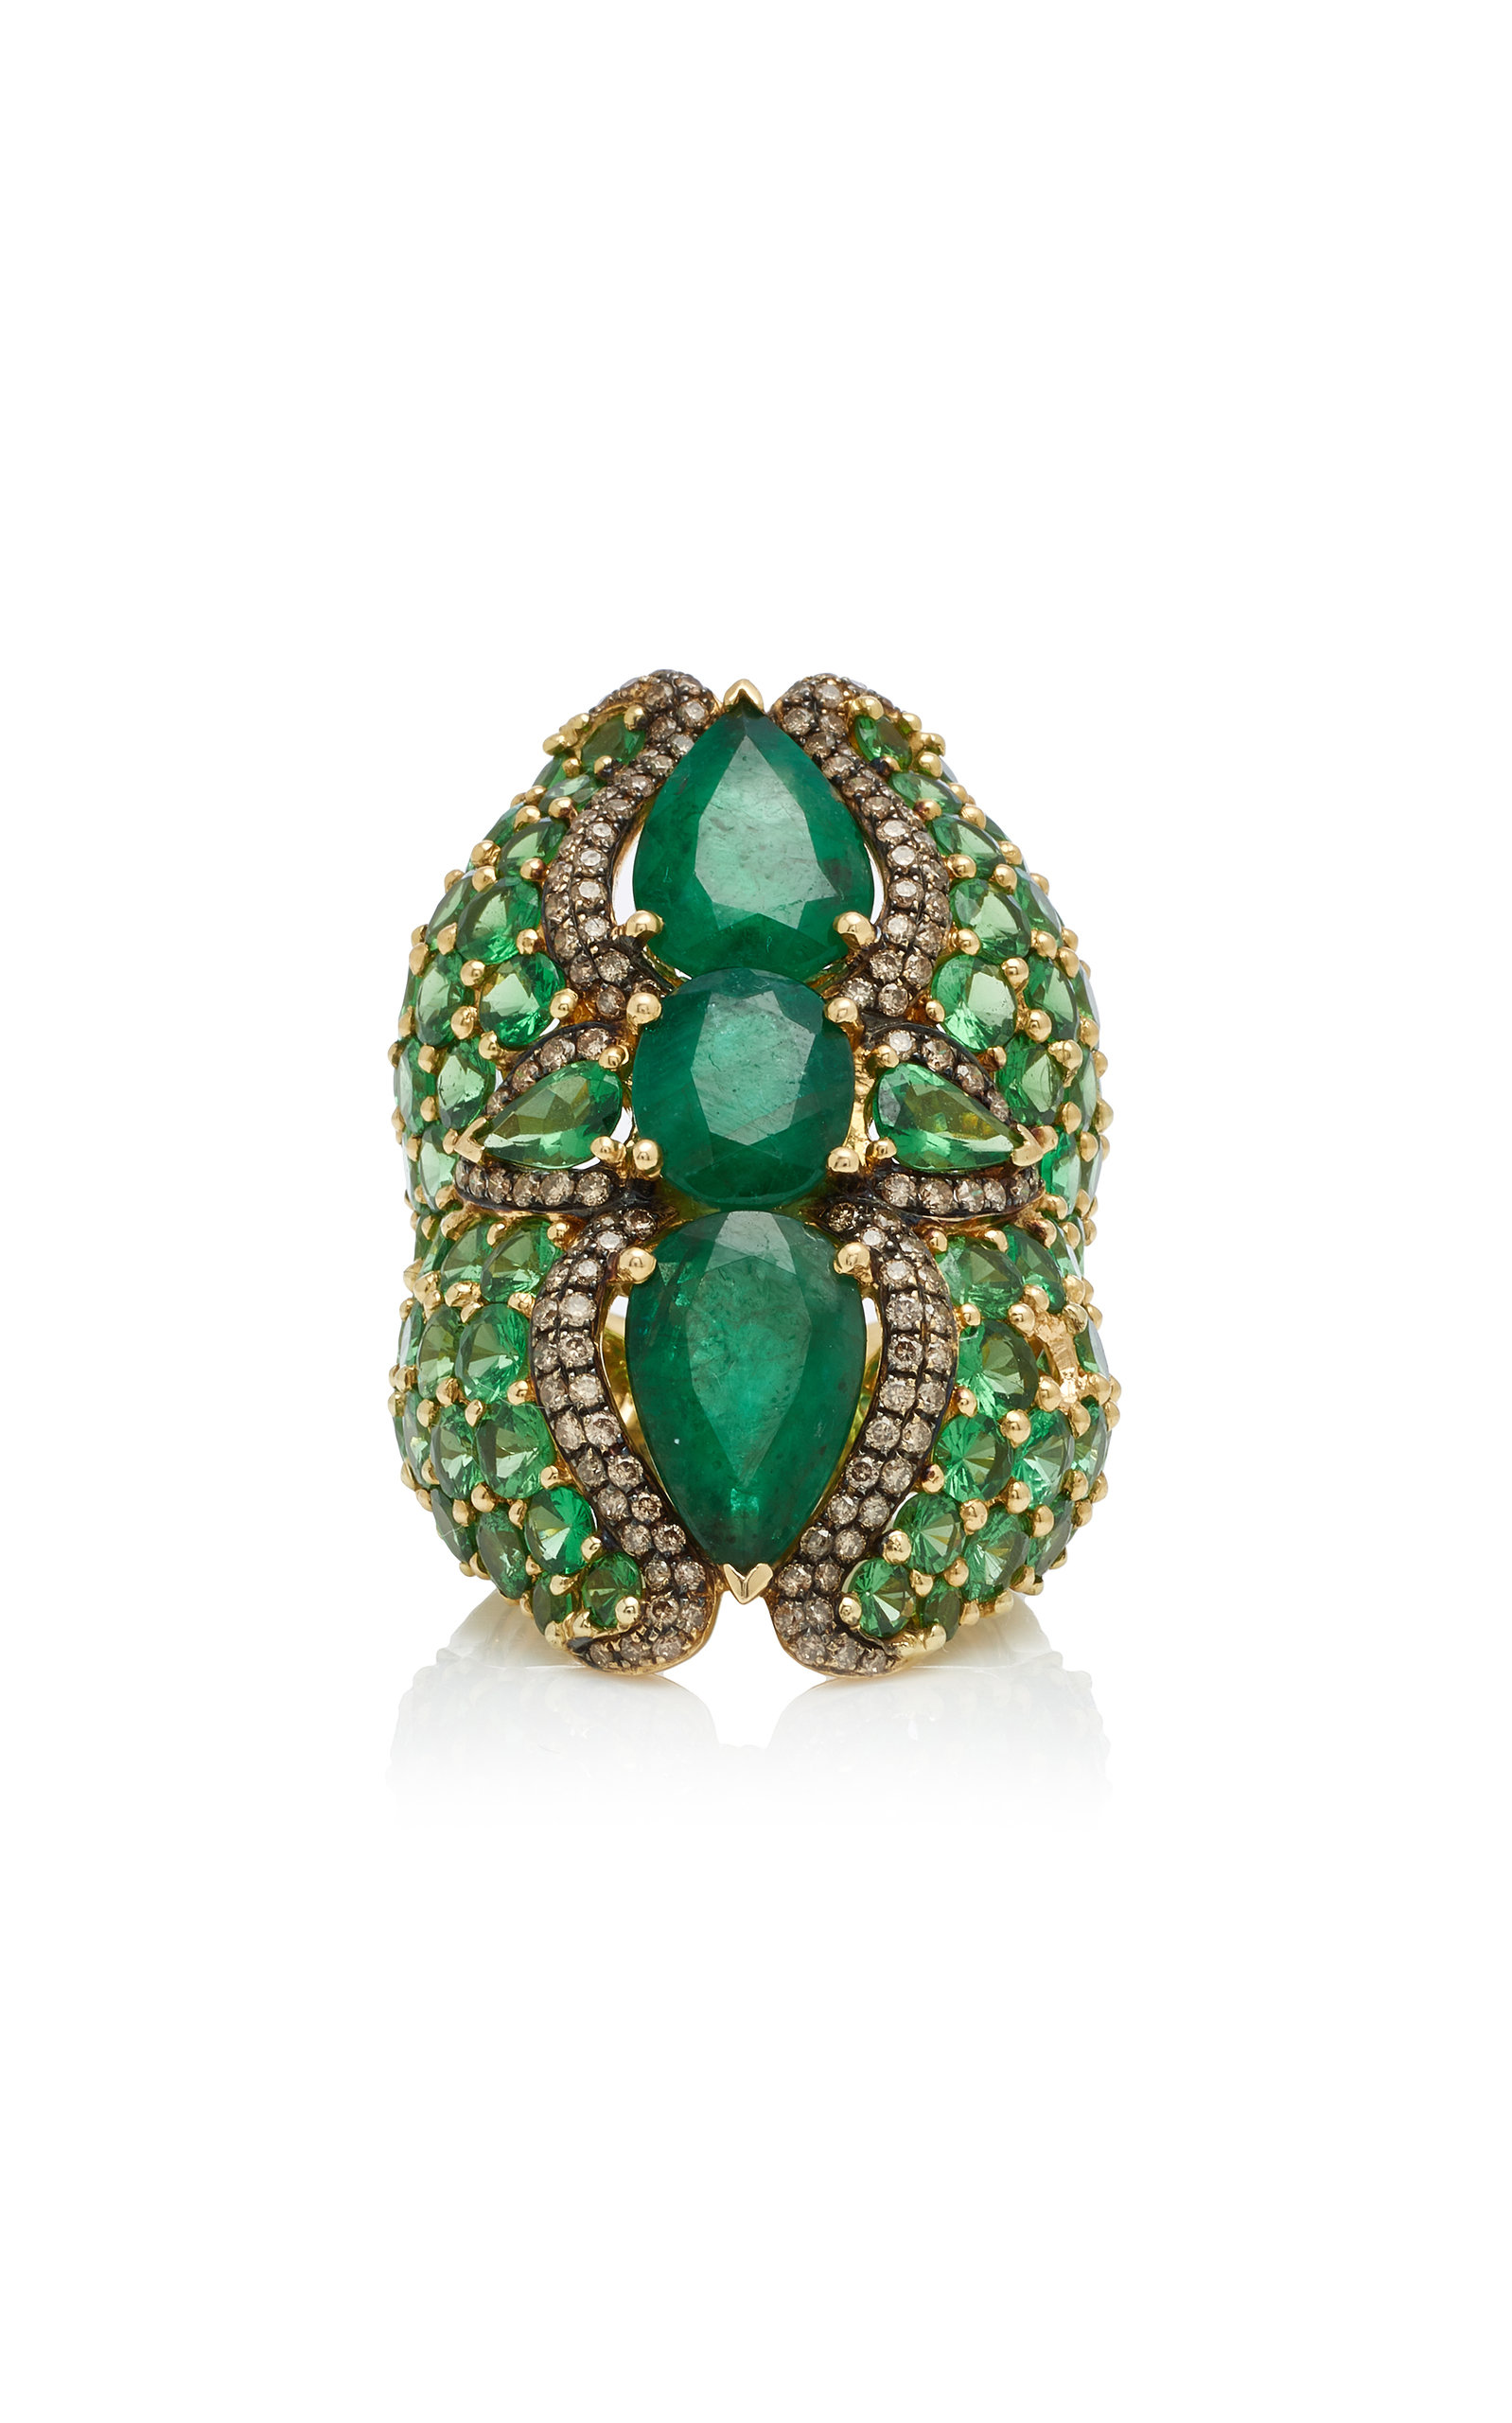 WENDY YUE 18K Gold Multi-Stone Ring in Green